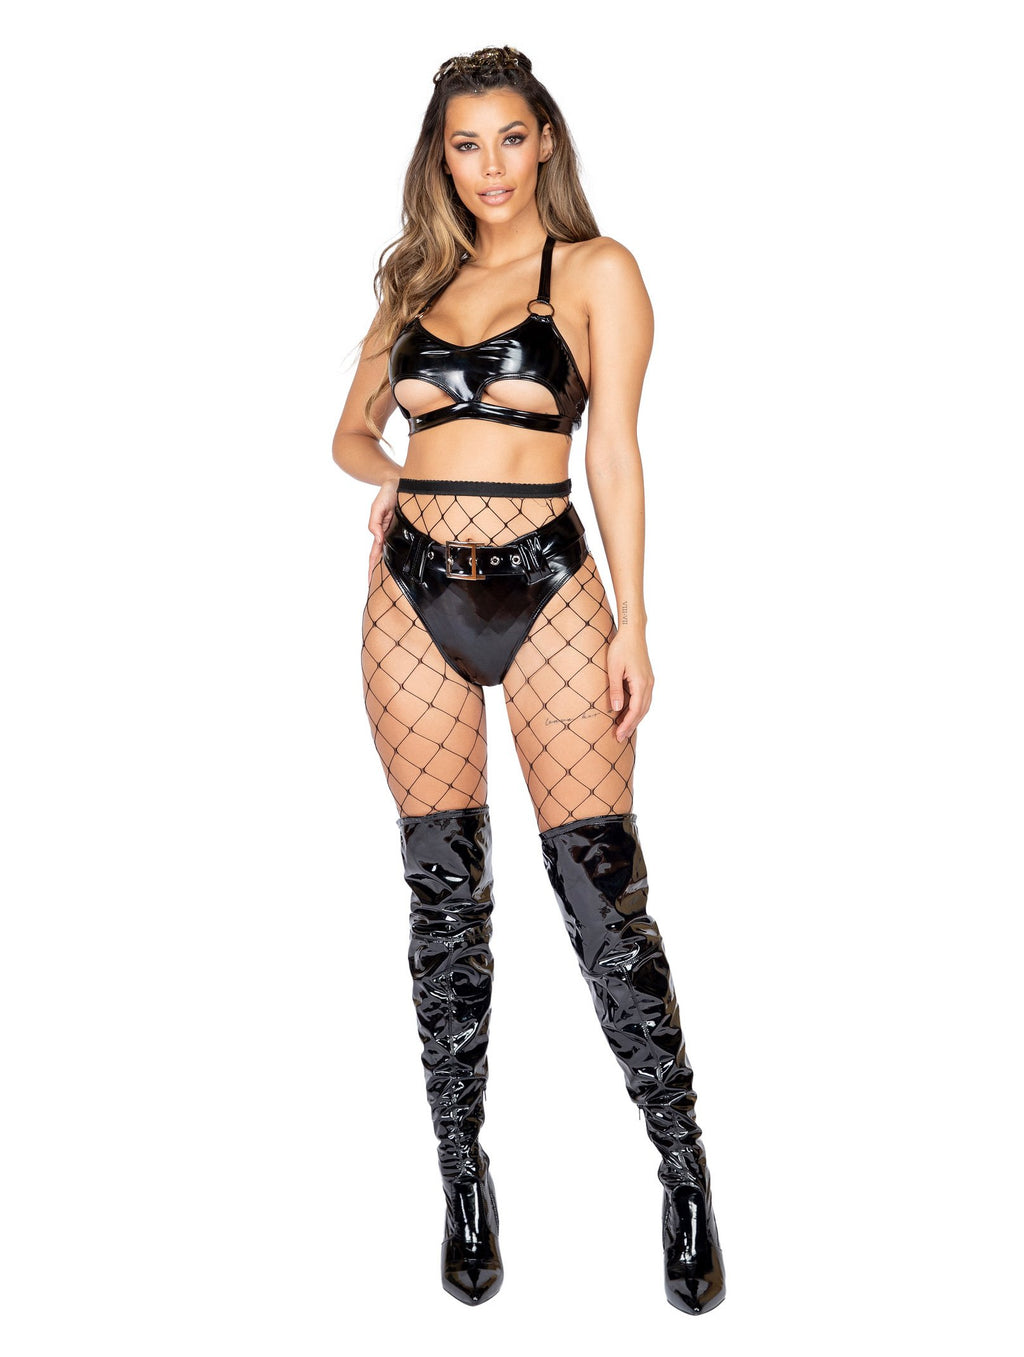 Roma Rave 3886 - 2pc Latex High-Waisted Shorts with Belt-Rave Shorts-Roma-Small-Black-Unspoken Fashion